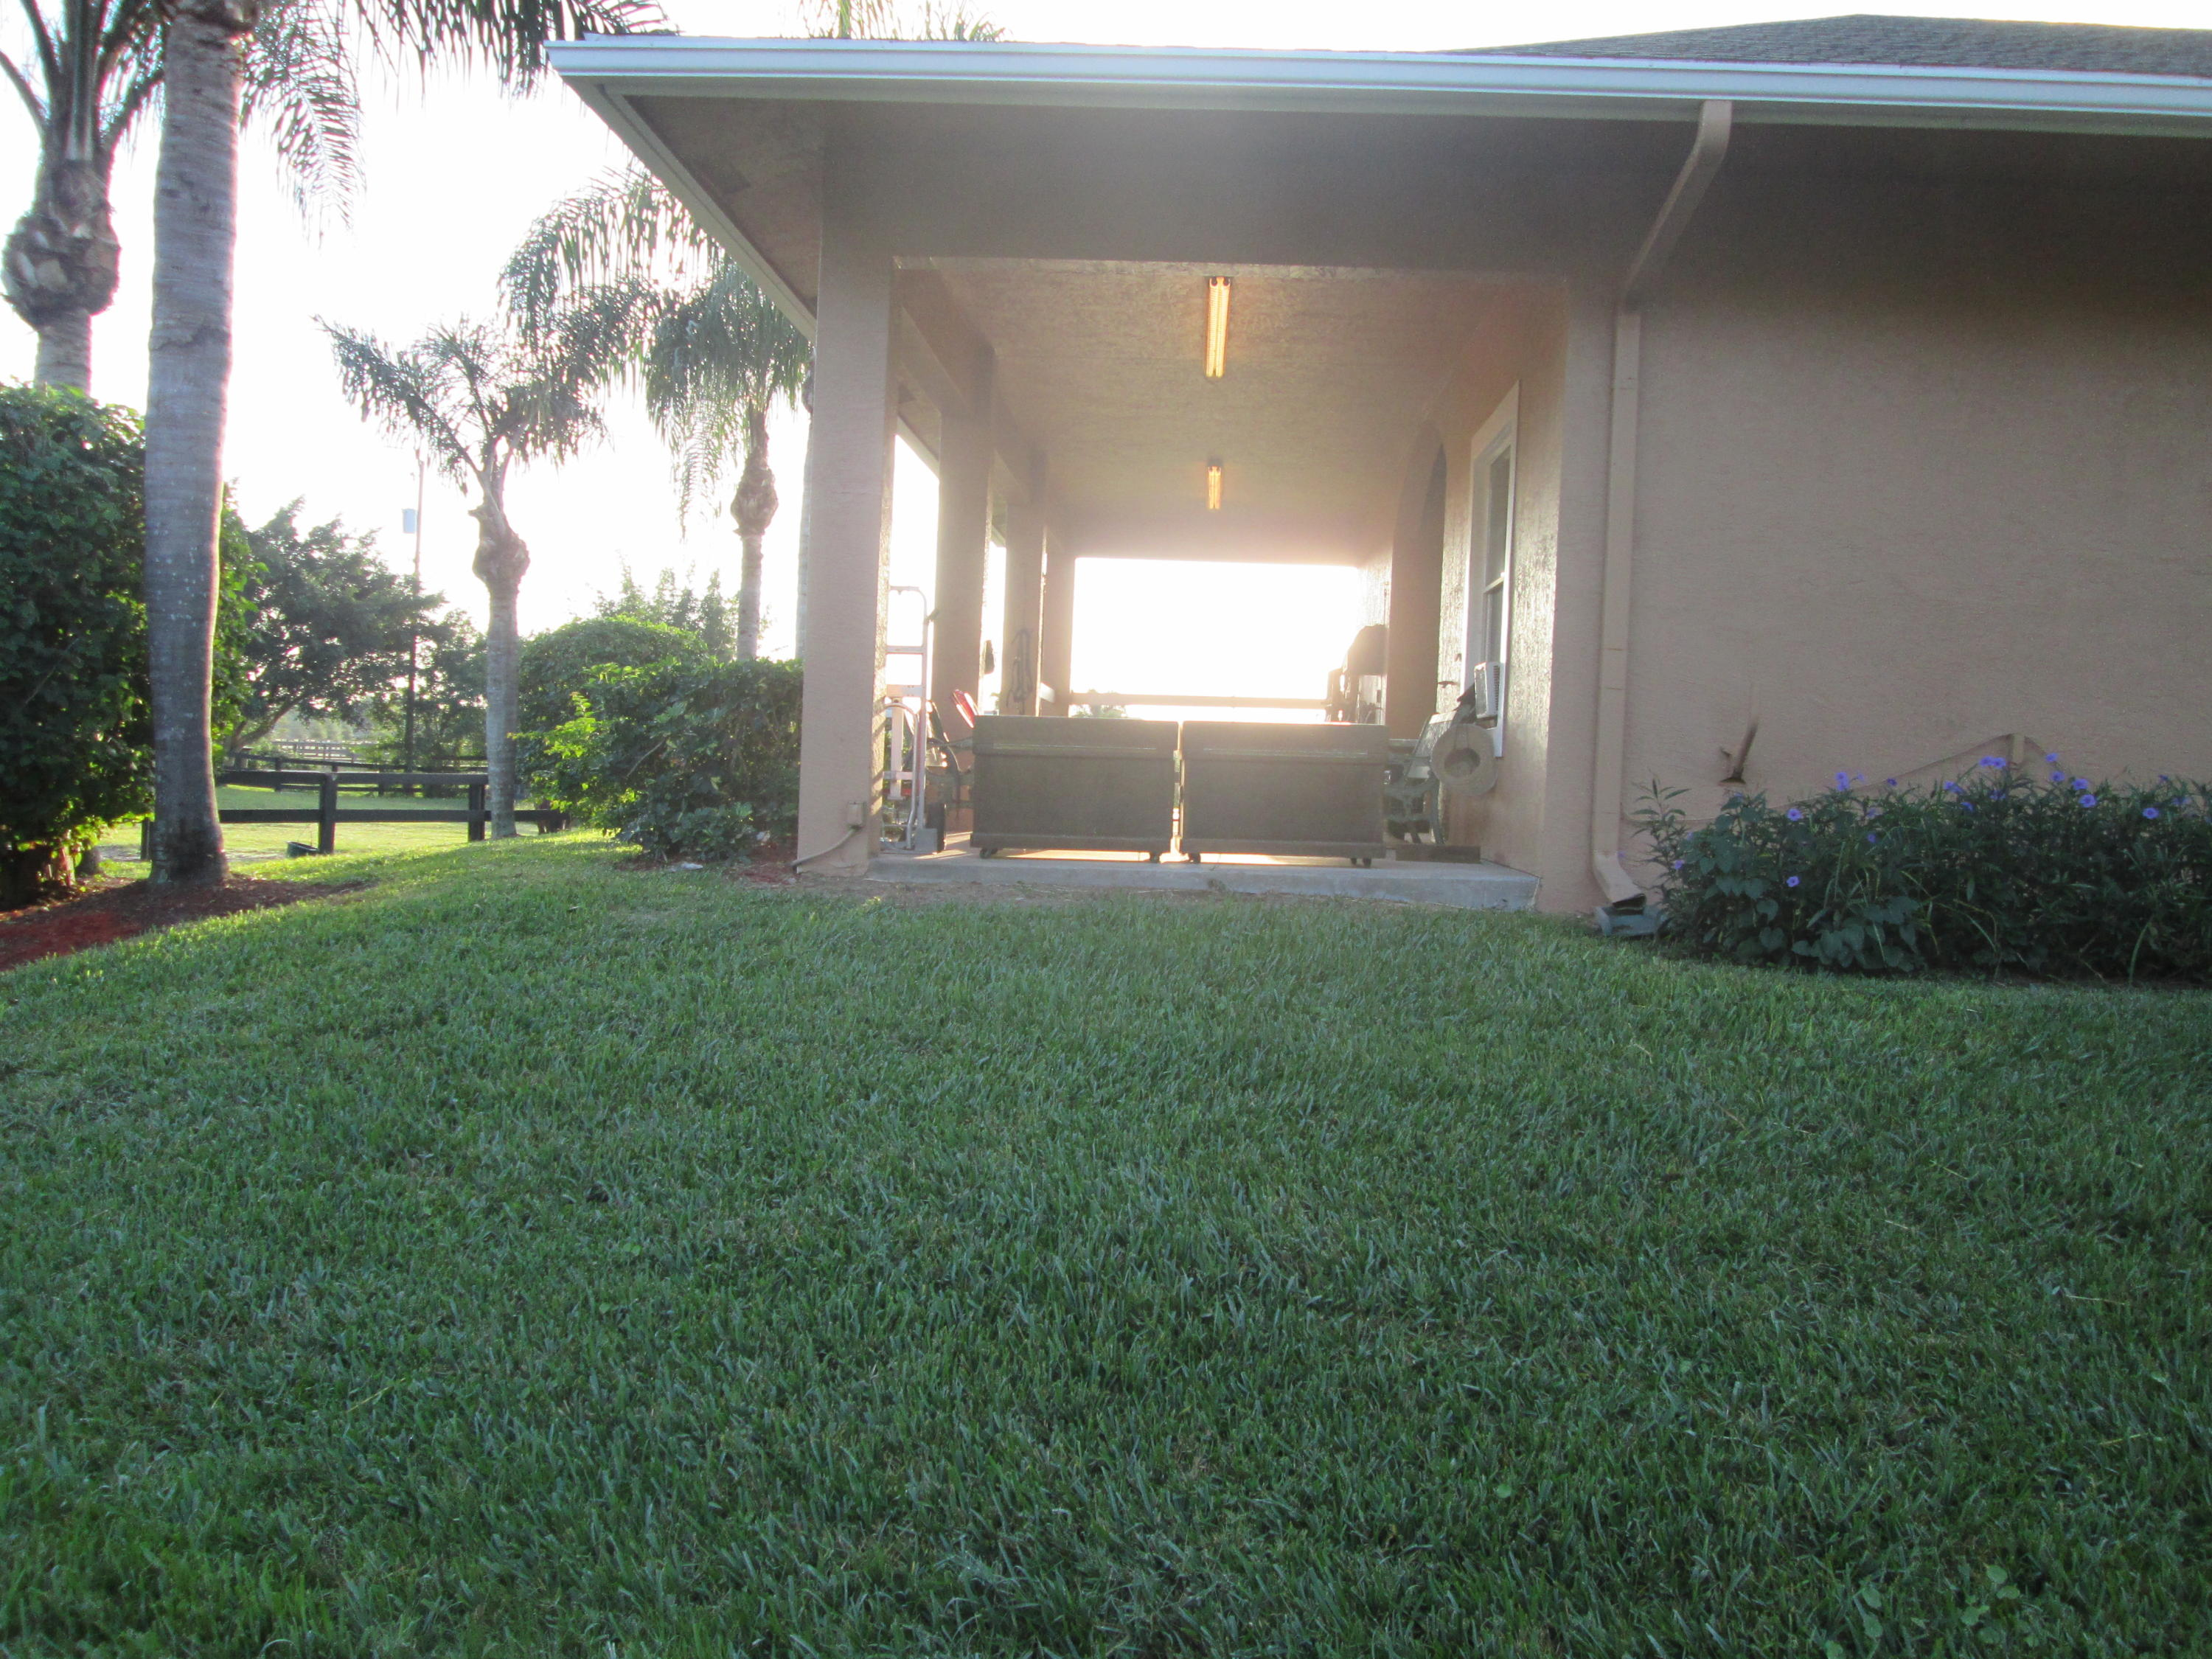 15920 46th Lane, Wellington, Florida 33414, 1 Bedroom Bedrooms, ,1 BathroomBathrooms,Efficiency,For Rent,Sunglade Palm Beach Point,46th,1,RX-10512566